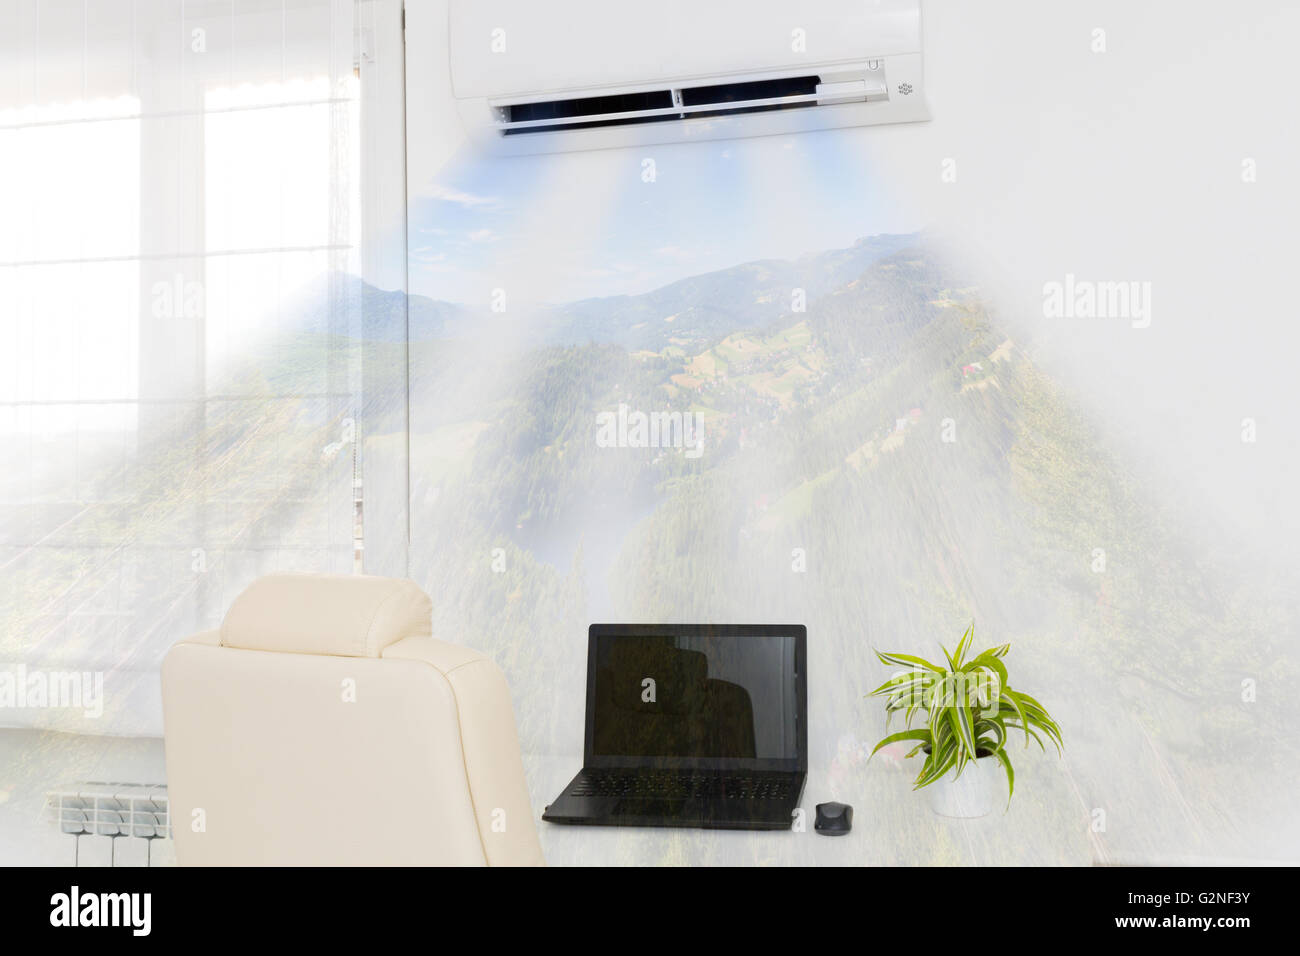 Air conditioner blowing cold air Home interior concepts Stock